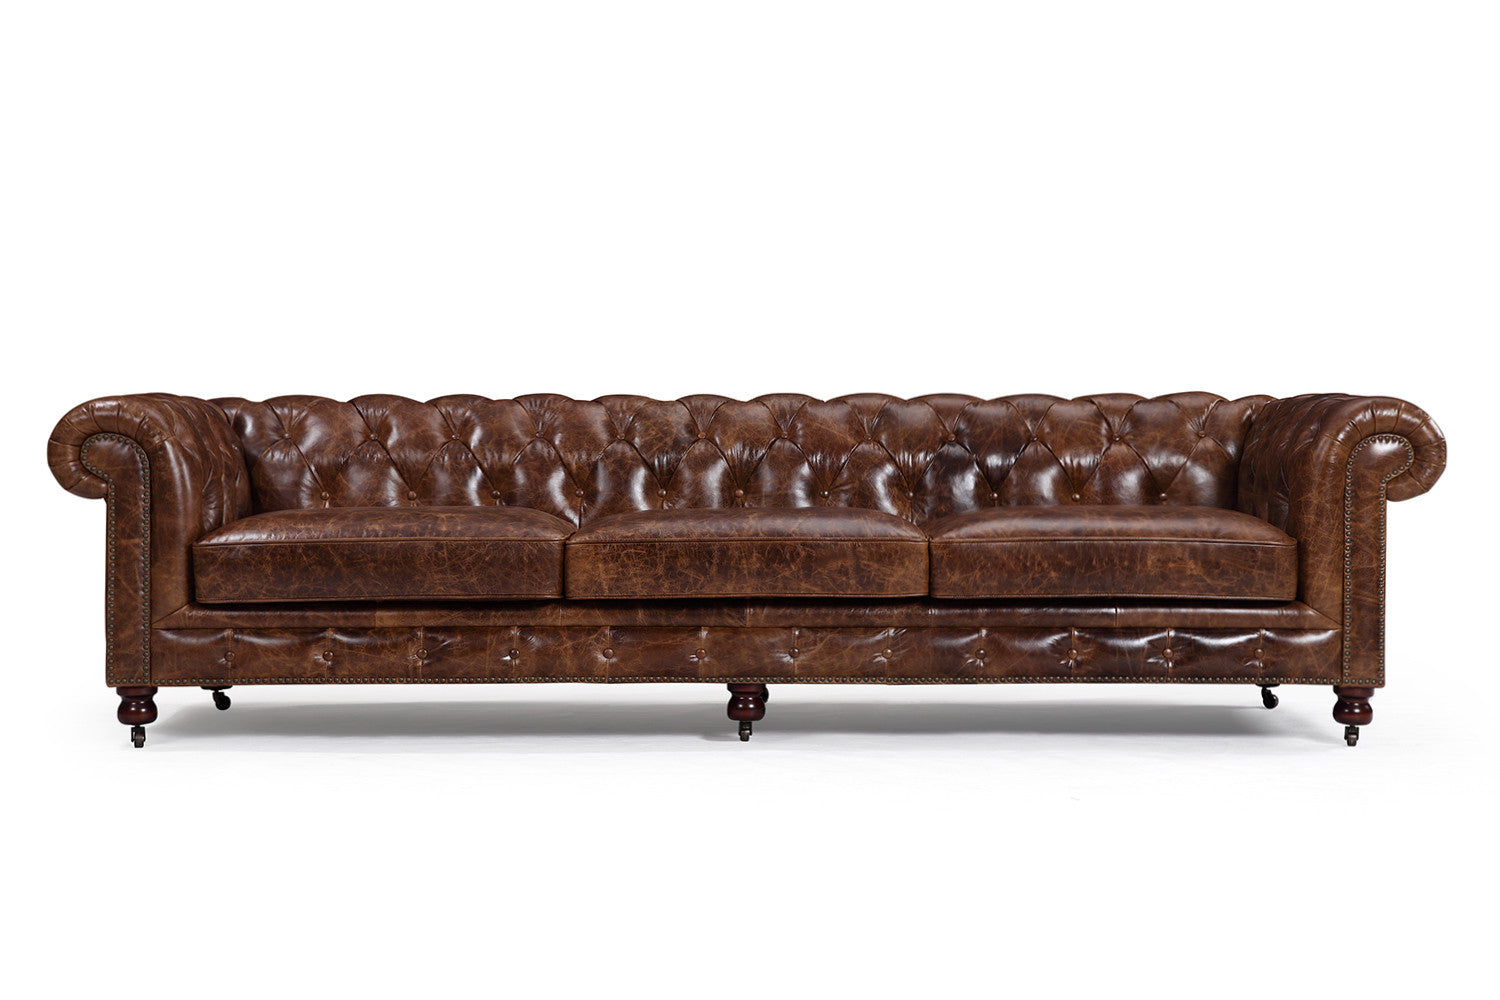 - The Kensington Large Chesterfield Sofa Rose And Moore